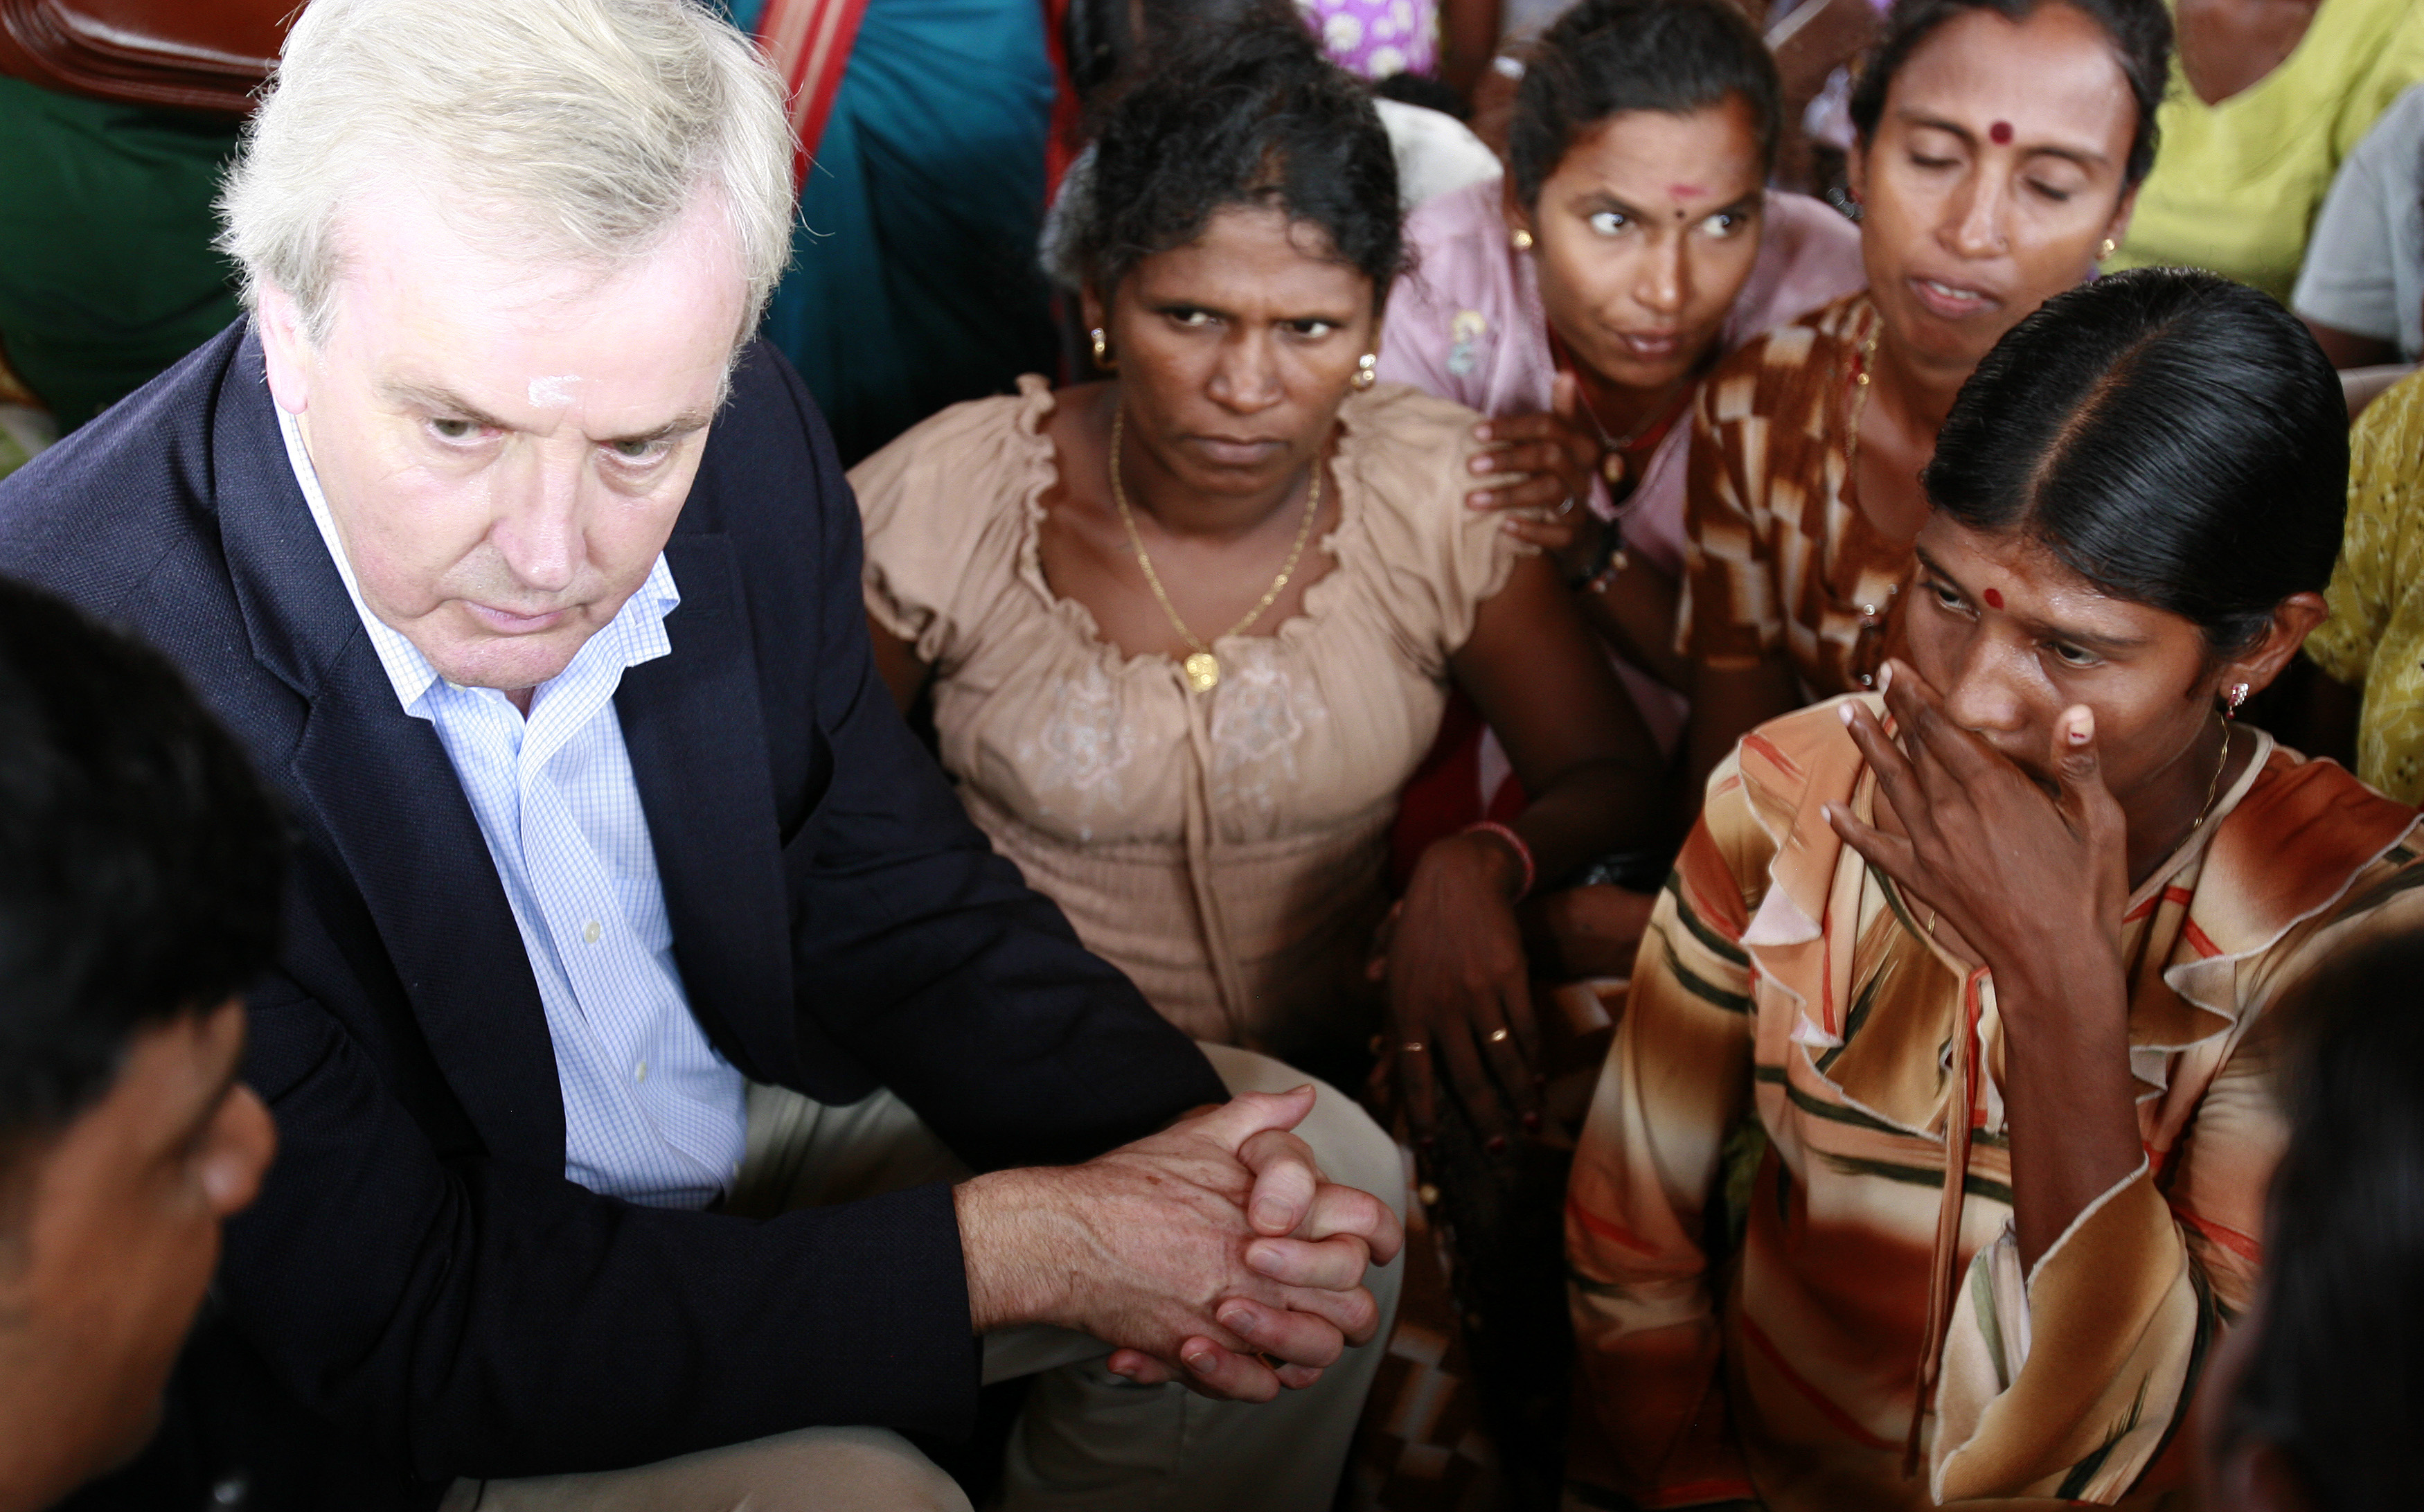 UN Undersecretary-General for Humanitarian Affairs, John Holmes, speaks with some resettled IDPs in northern Sri Lanka, 18 November, 2009